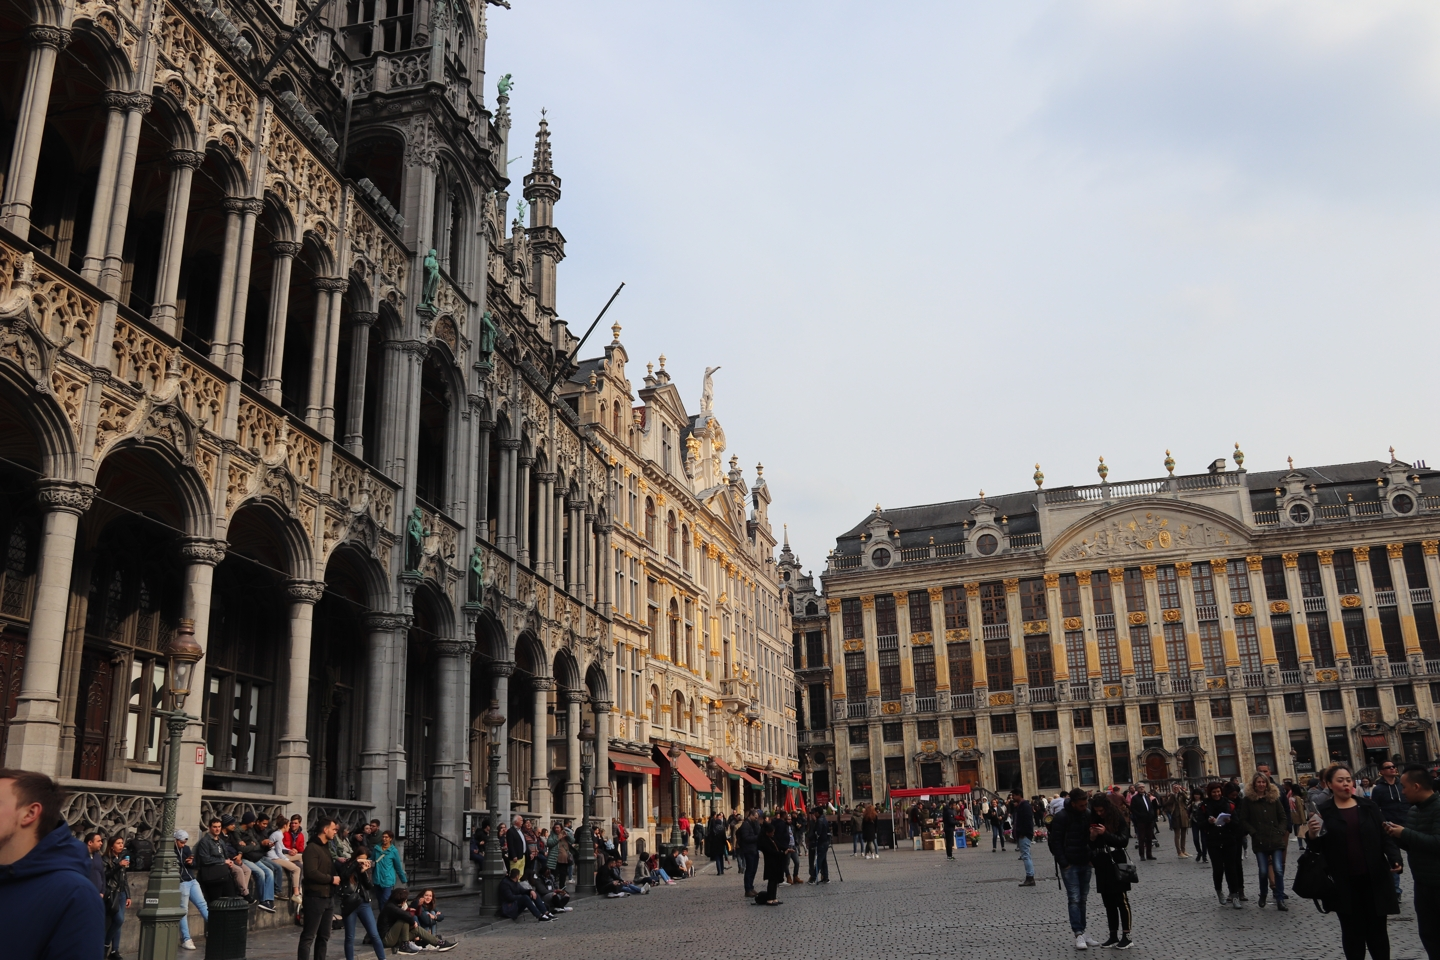 The Grand Place (Grote Markt) in Brussels